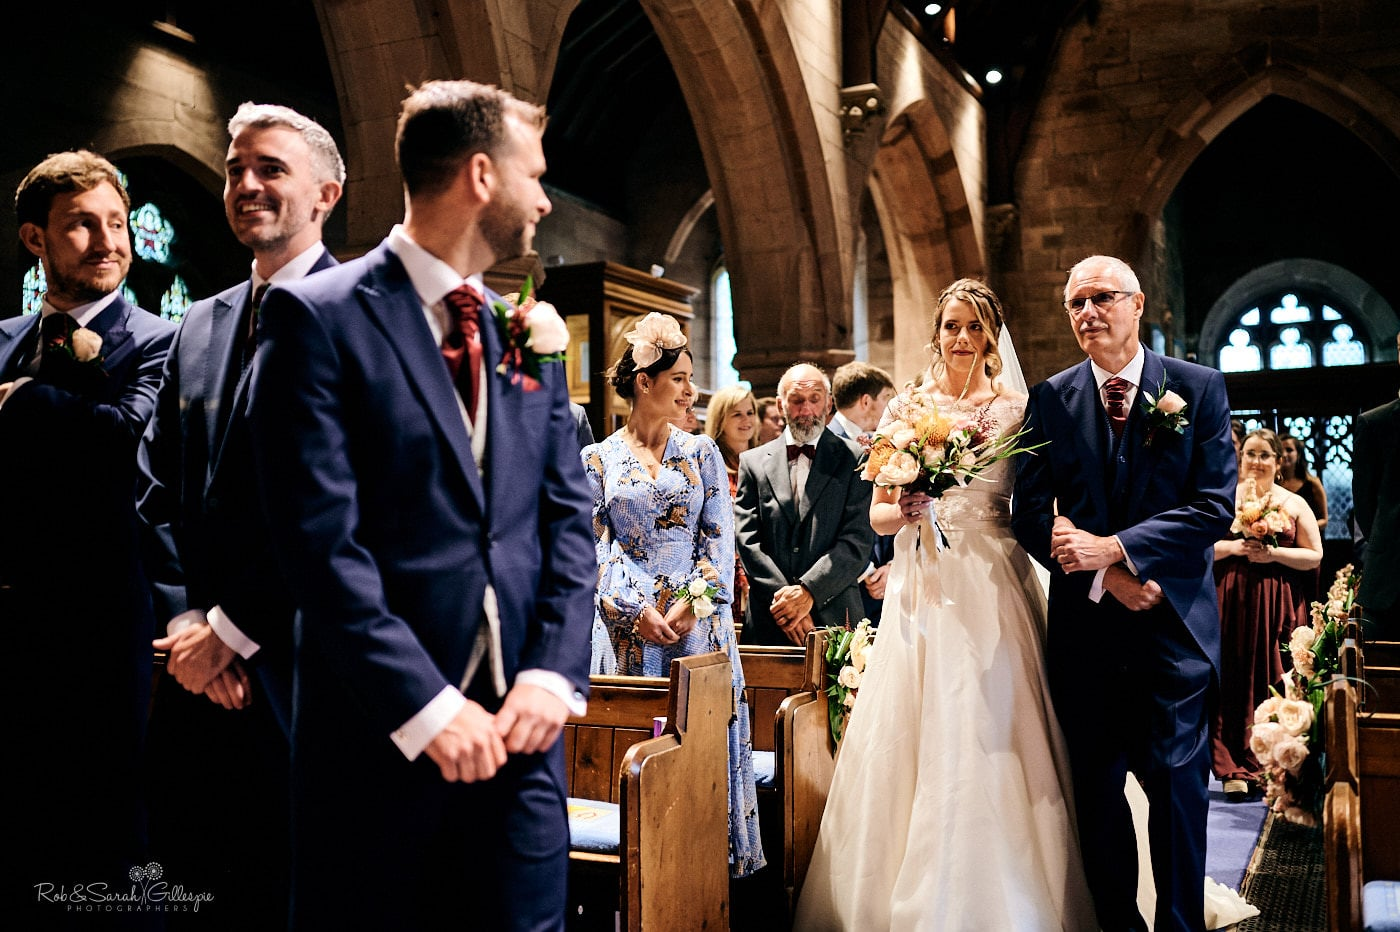 Bride and groom see each other for the first time during church wedding ceremony